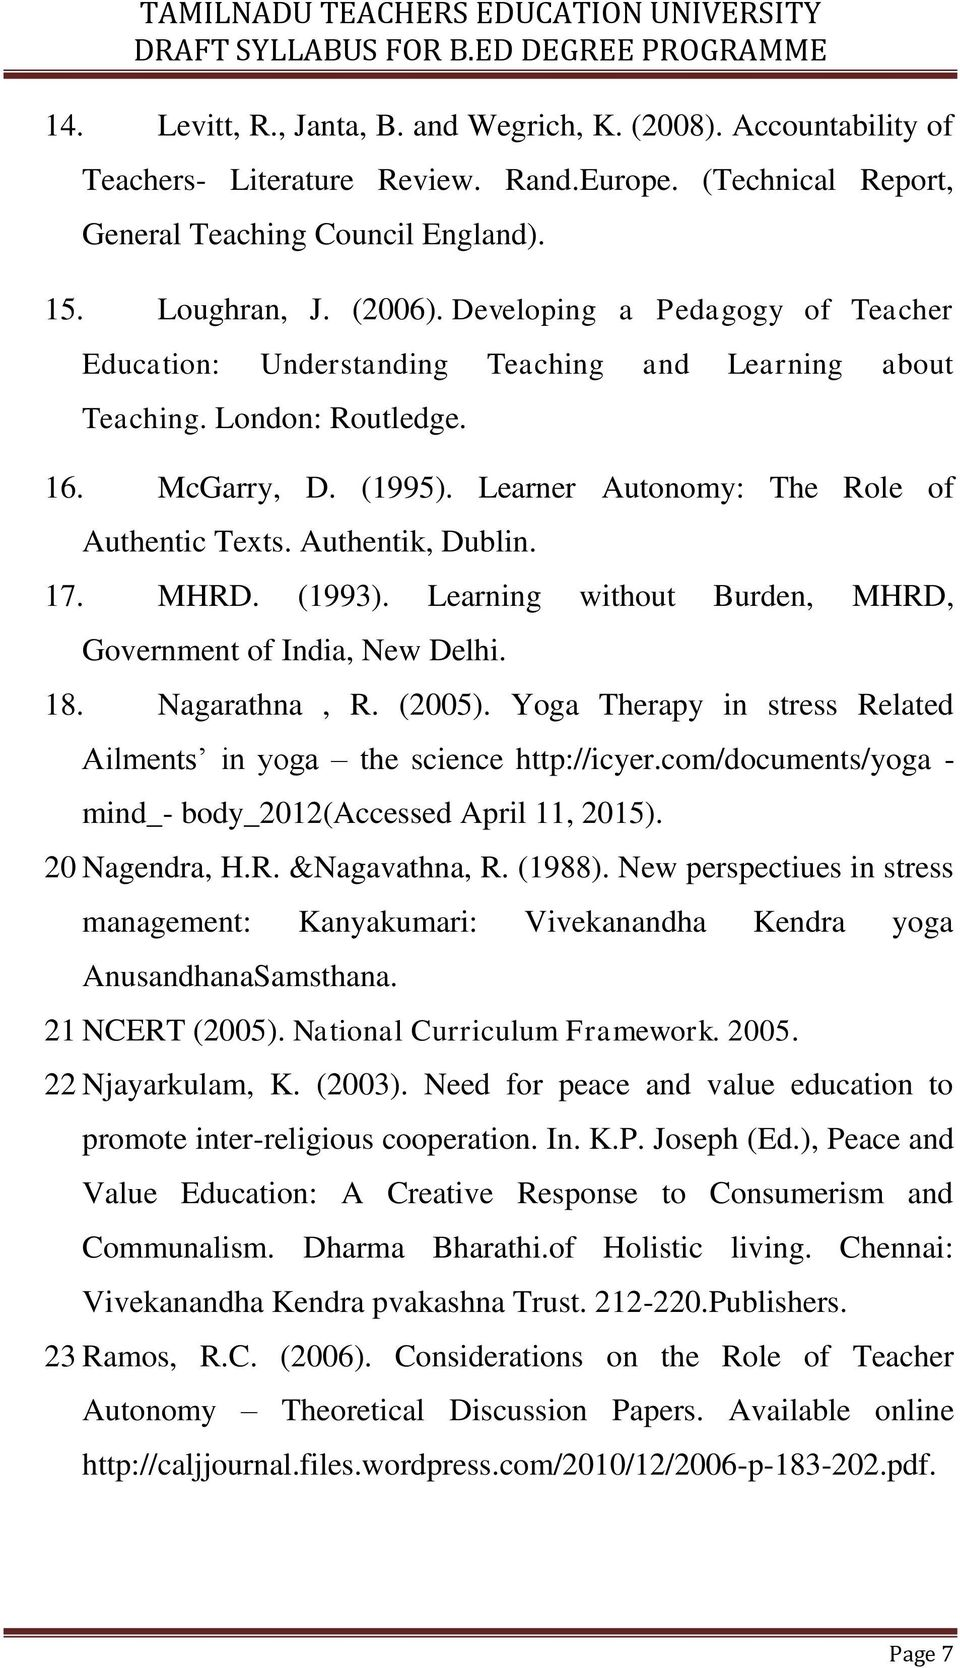 Authentik, Dublin. 17. MHRD. (1993). Learning without Burden, MHRD, Government of India, New Delhi. 18. Nagarathna, R. (2005). Yoga Therapy in stress Related Ailments in yoga the science http://icyer.